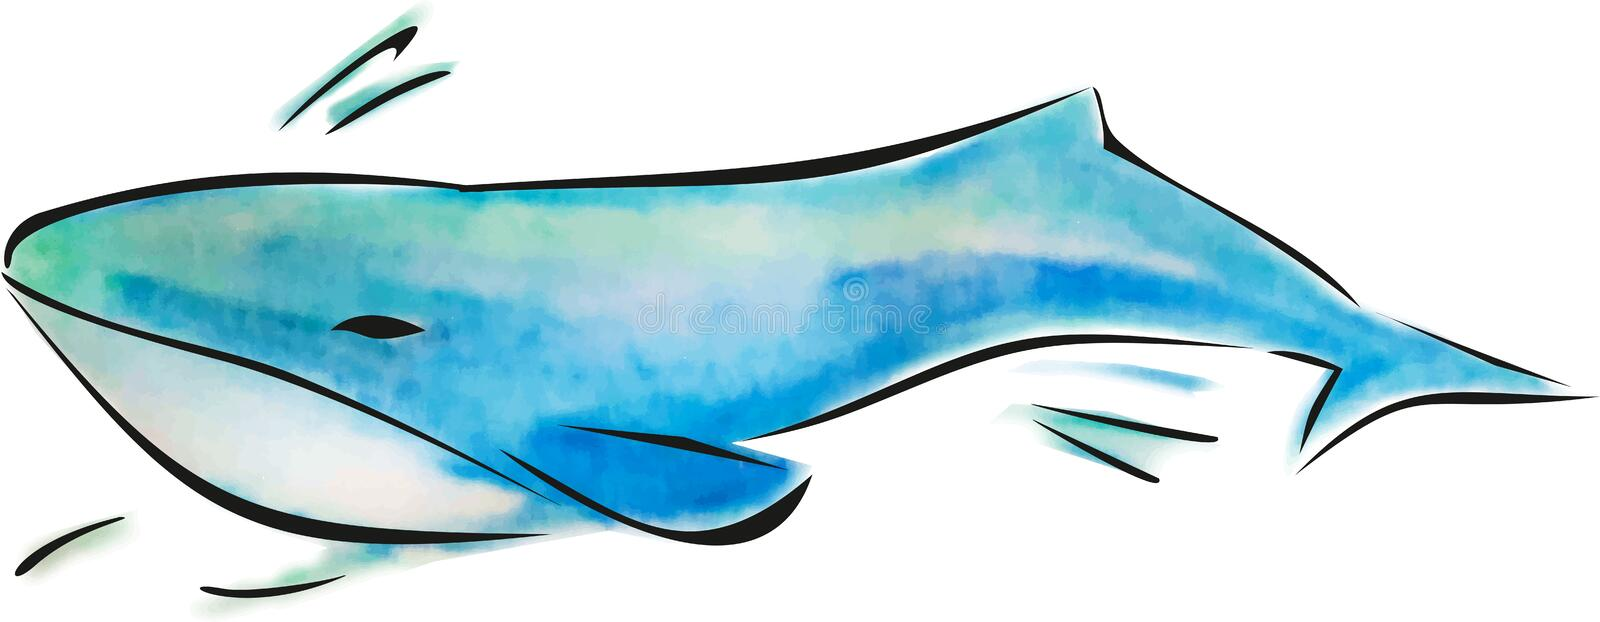 Illustration d'aquarelle de baleine, animal de mer, habitant bleu d'océan, faune sous-marine illustration libre de droits